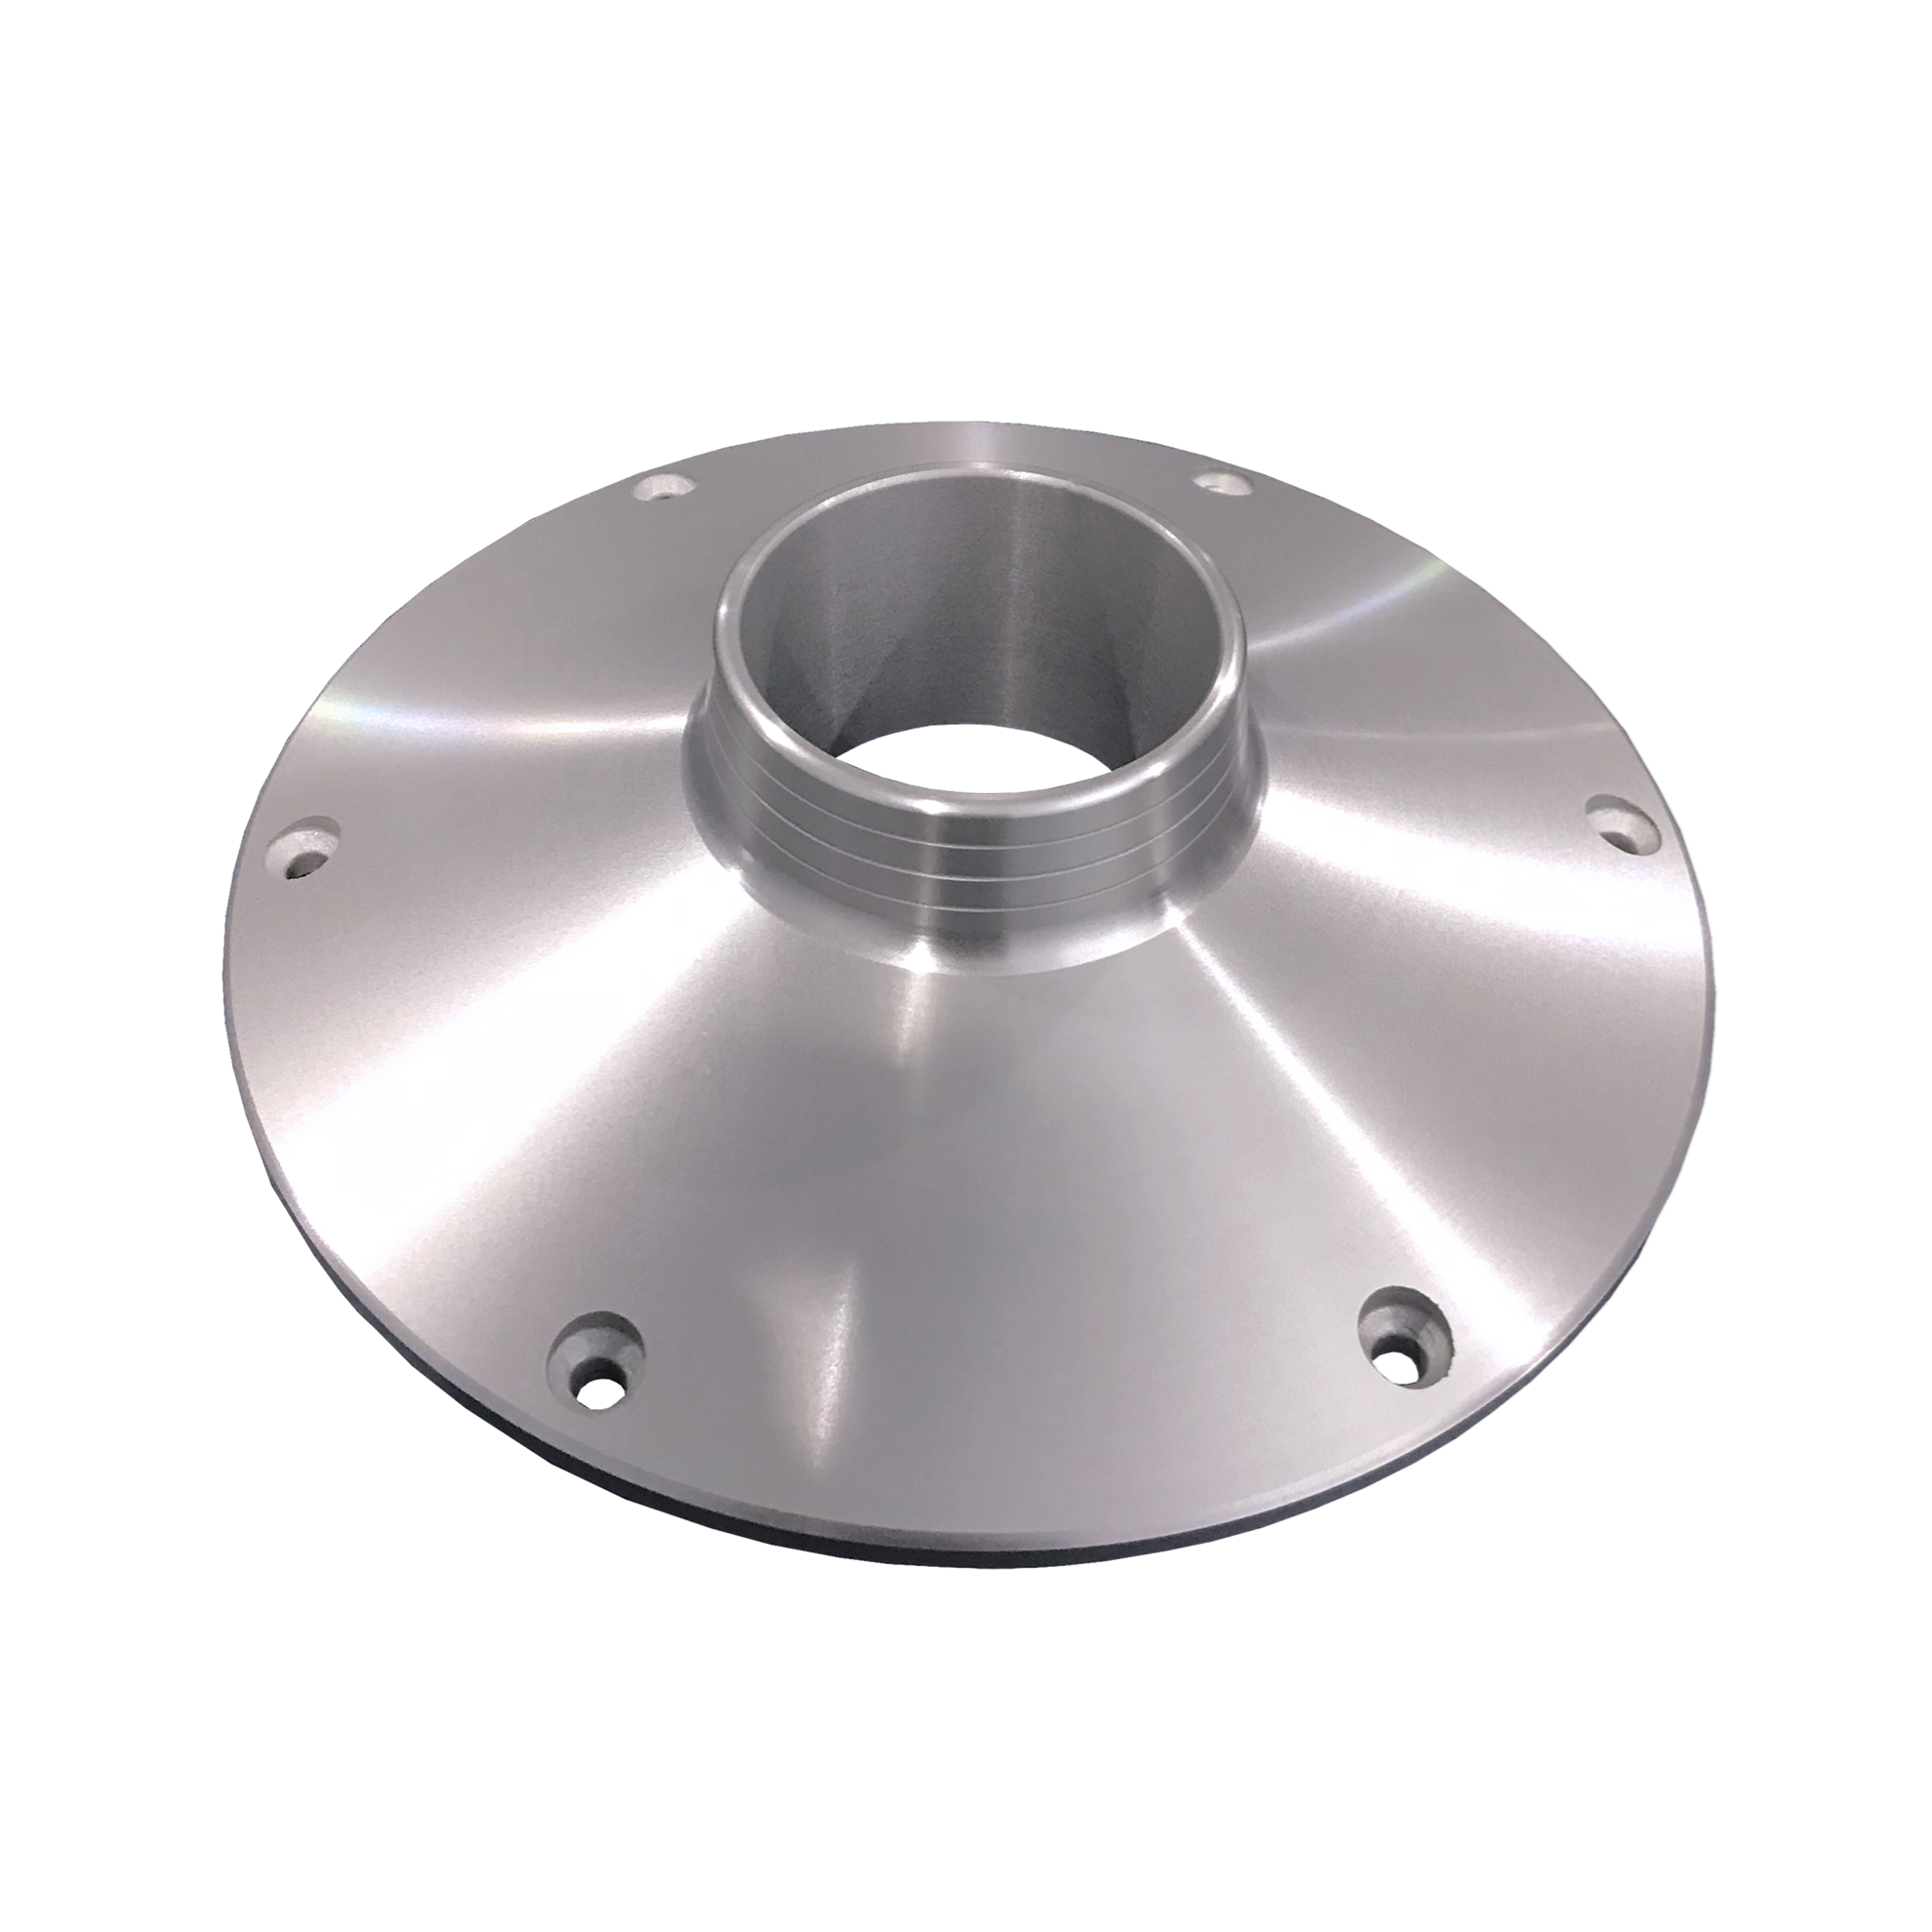 """TACO Marine Z10-4075 ALUMINUM TABLE BASE OR SUPPORT, SURFACE MOUNT FOR 2-3/8"""" DIA COLUMN image 1"""